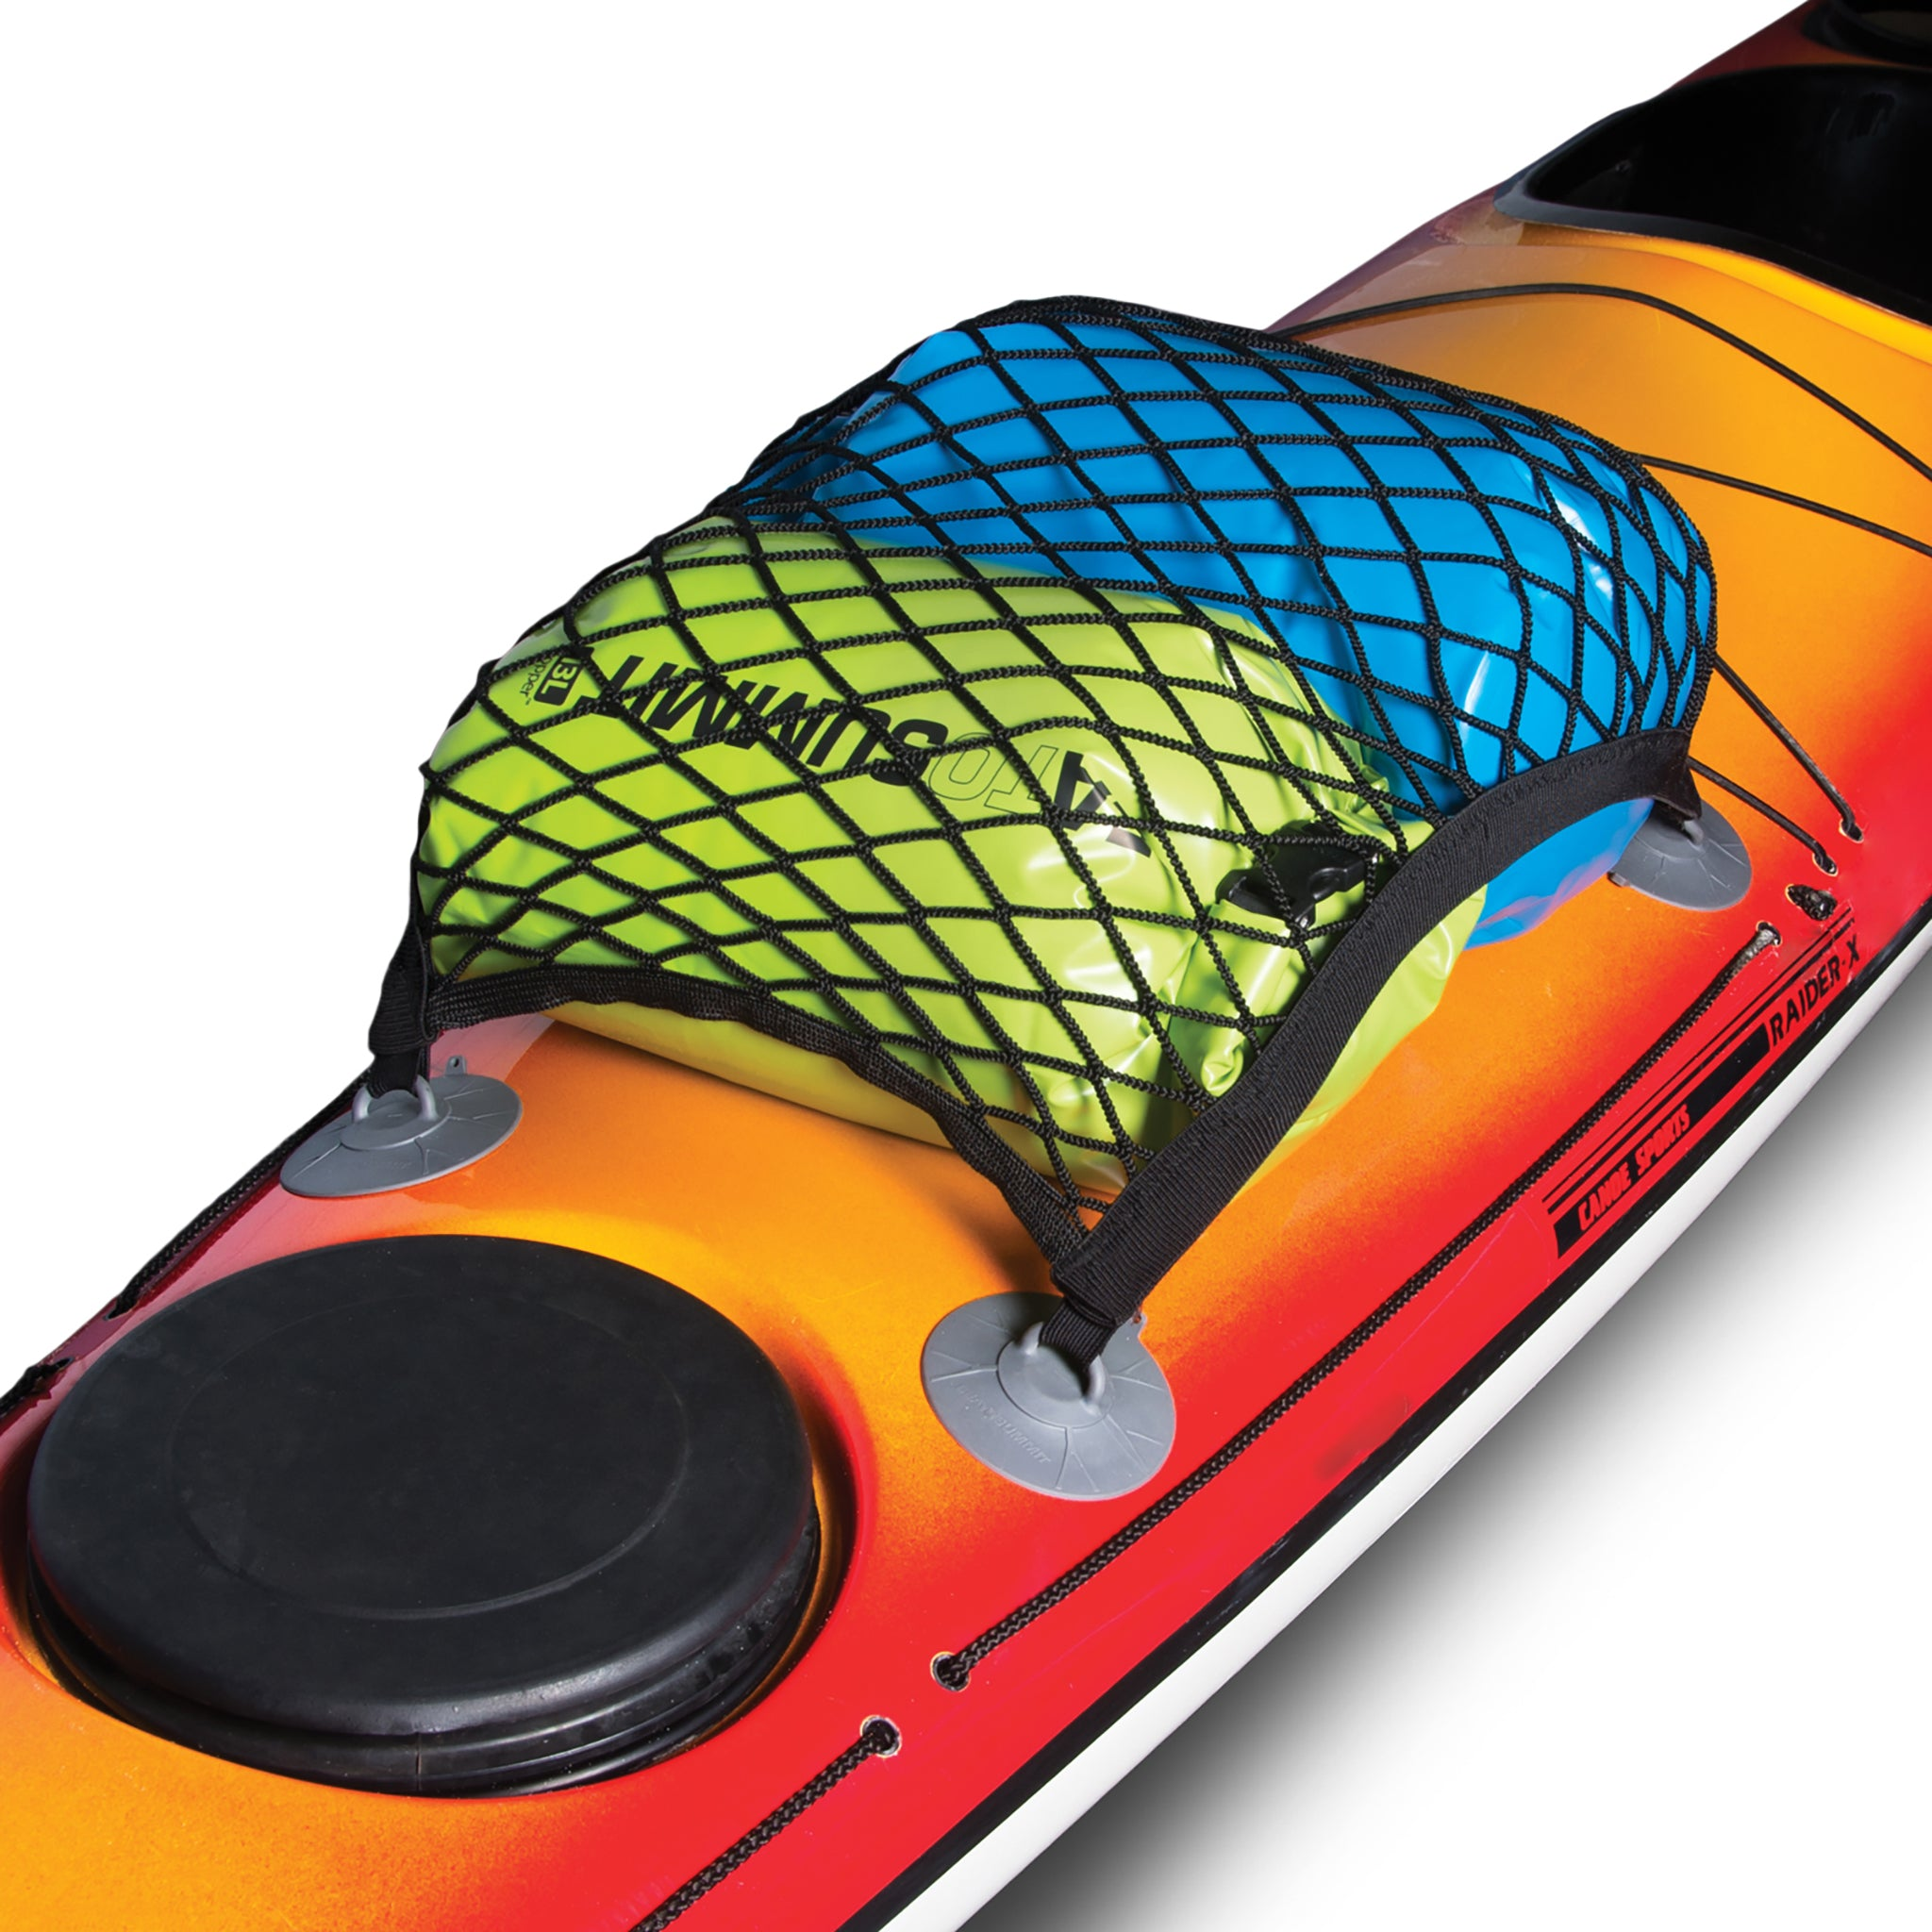 Kayak Accessories _ Deck Cargo Net _ Dry Bag storage